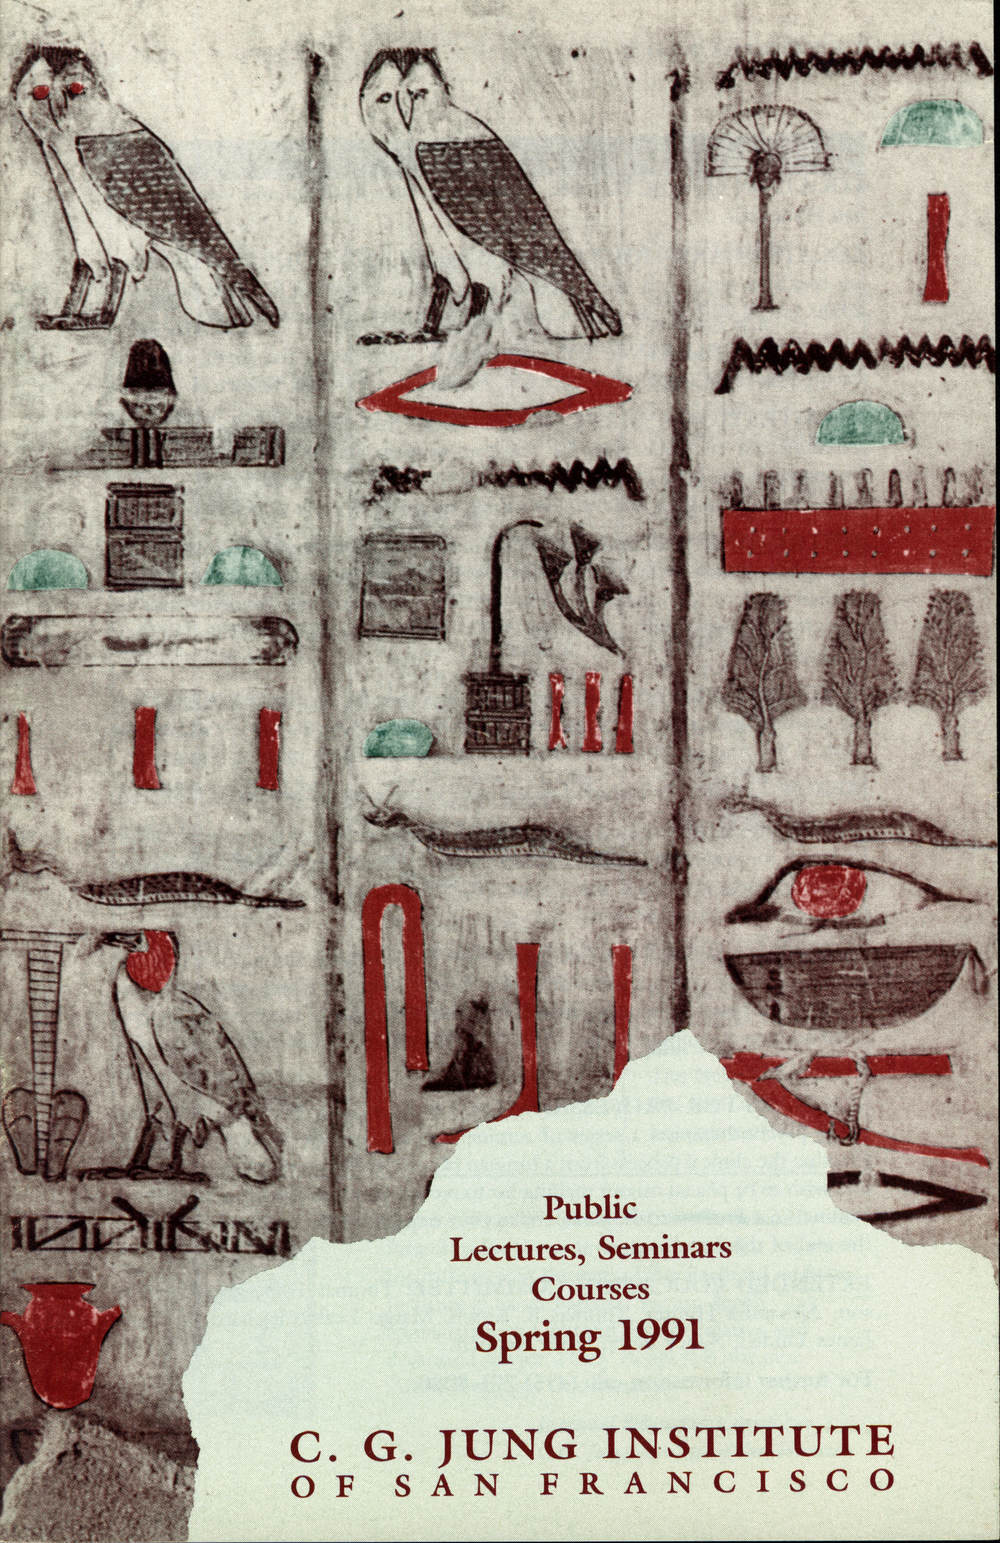 Course and program catalog (1991)